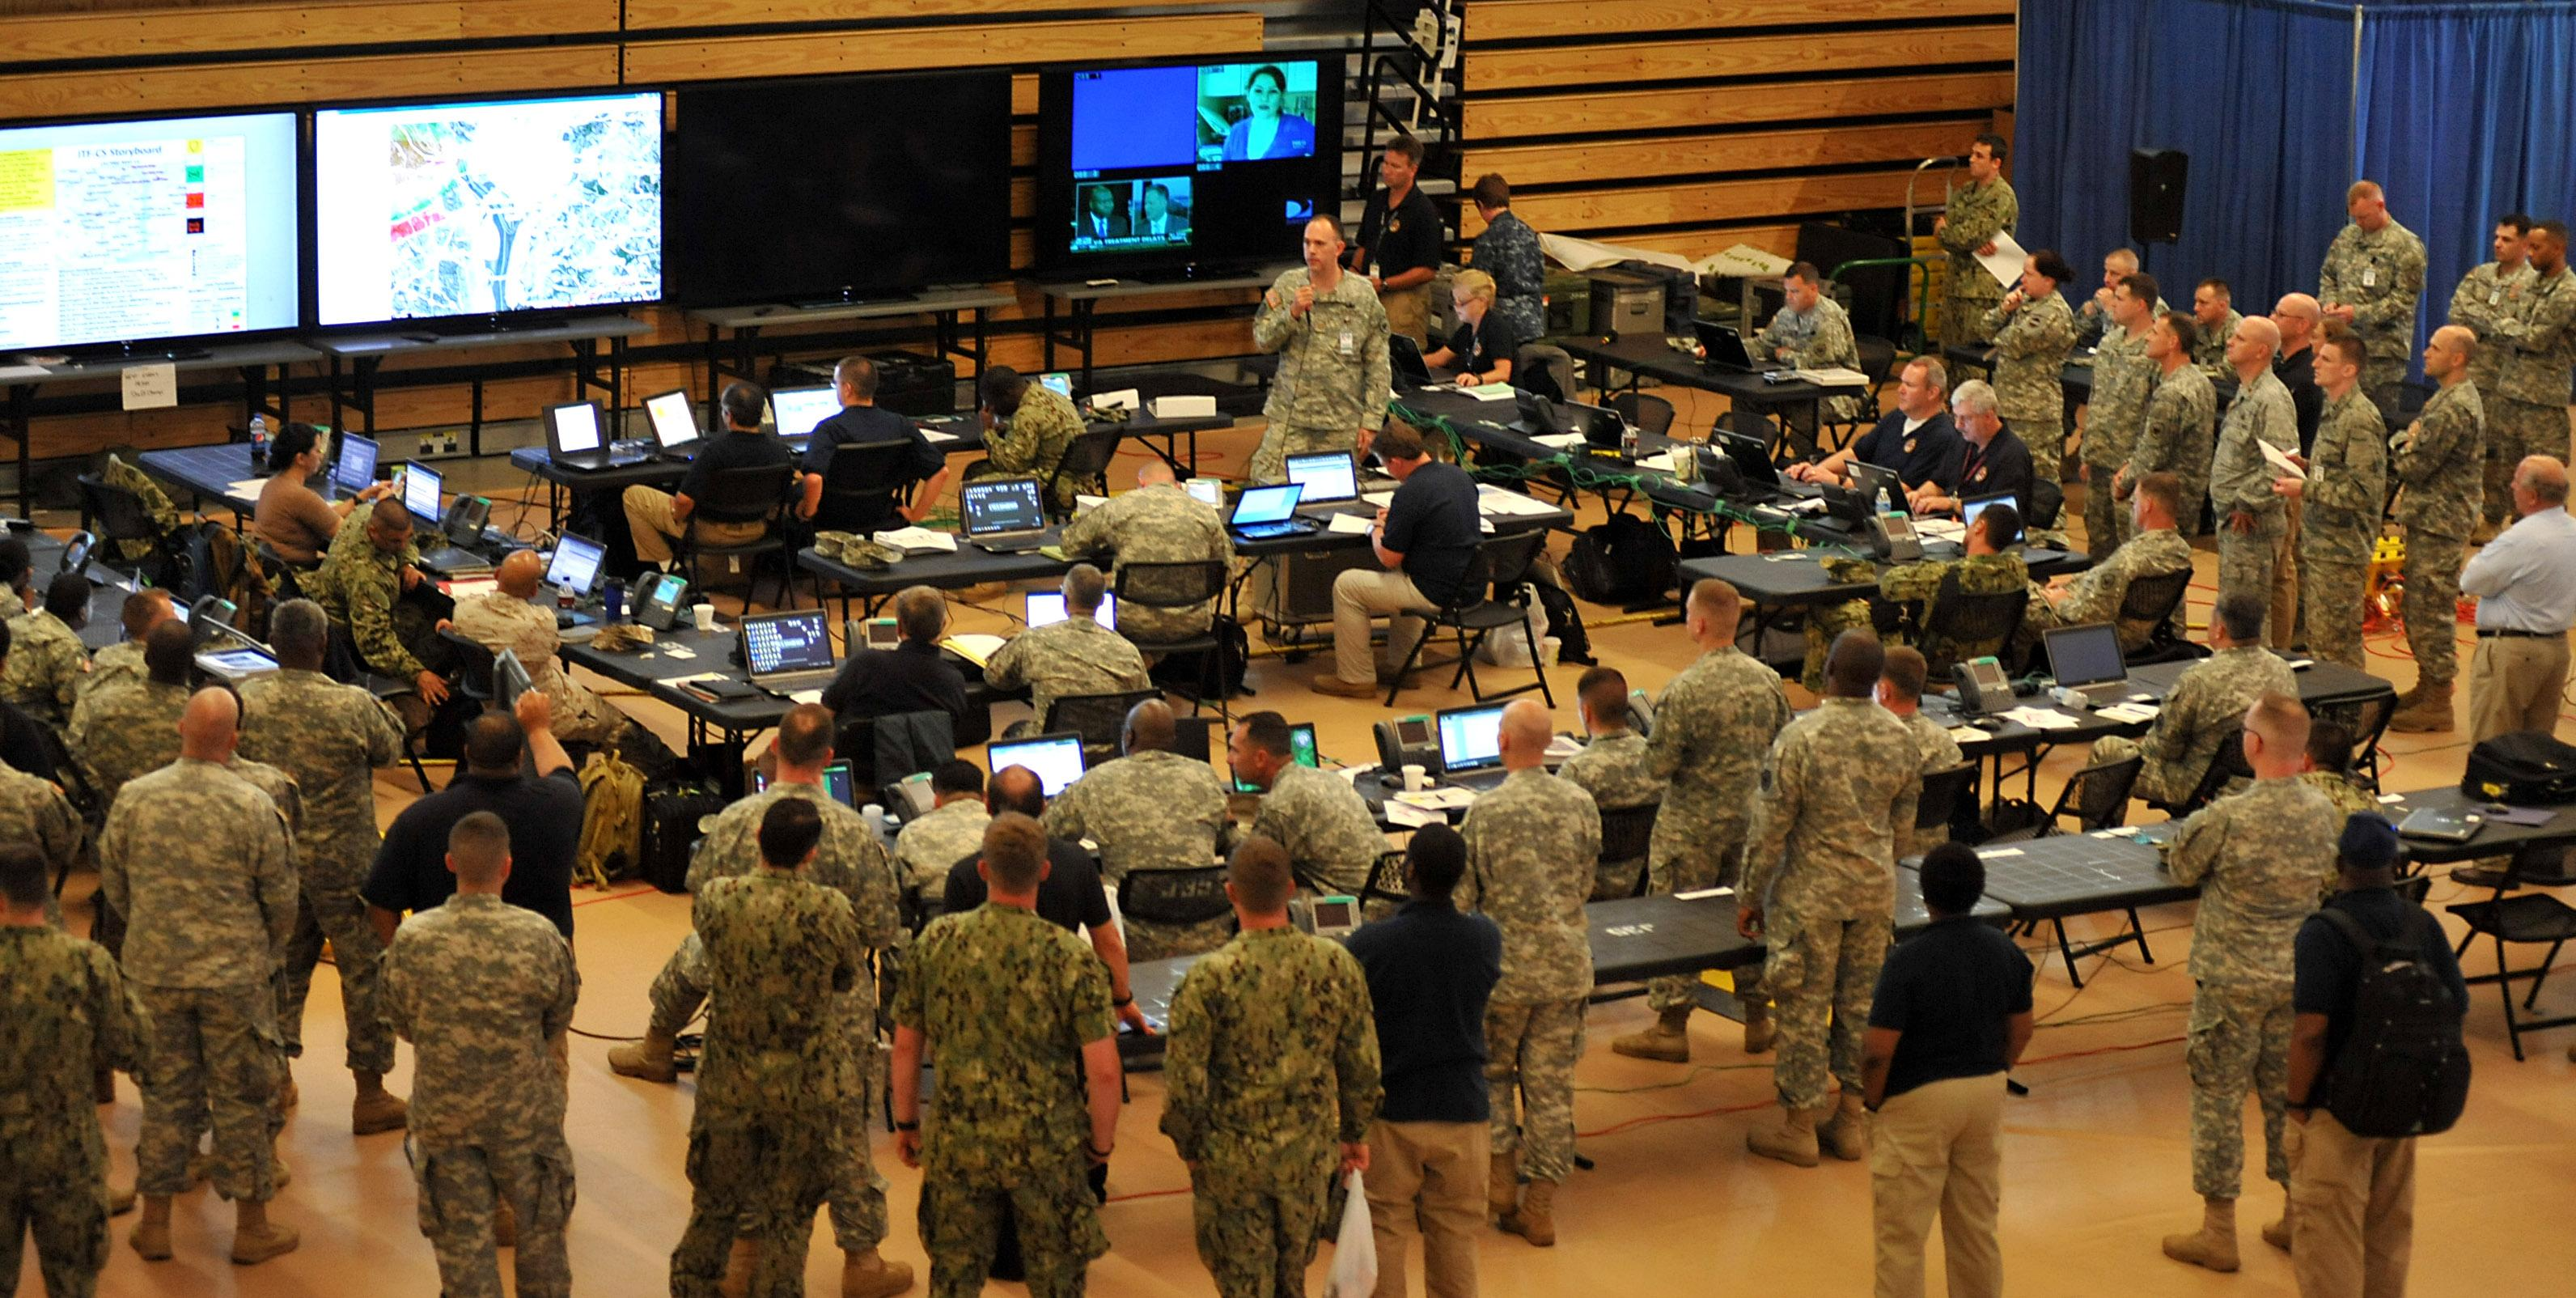 EMSI Delivers Staging Area Manager and ICS-300 Training to DOD Joint Task Force Civil Support (JTF-CS)